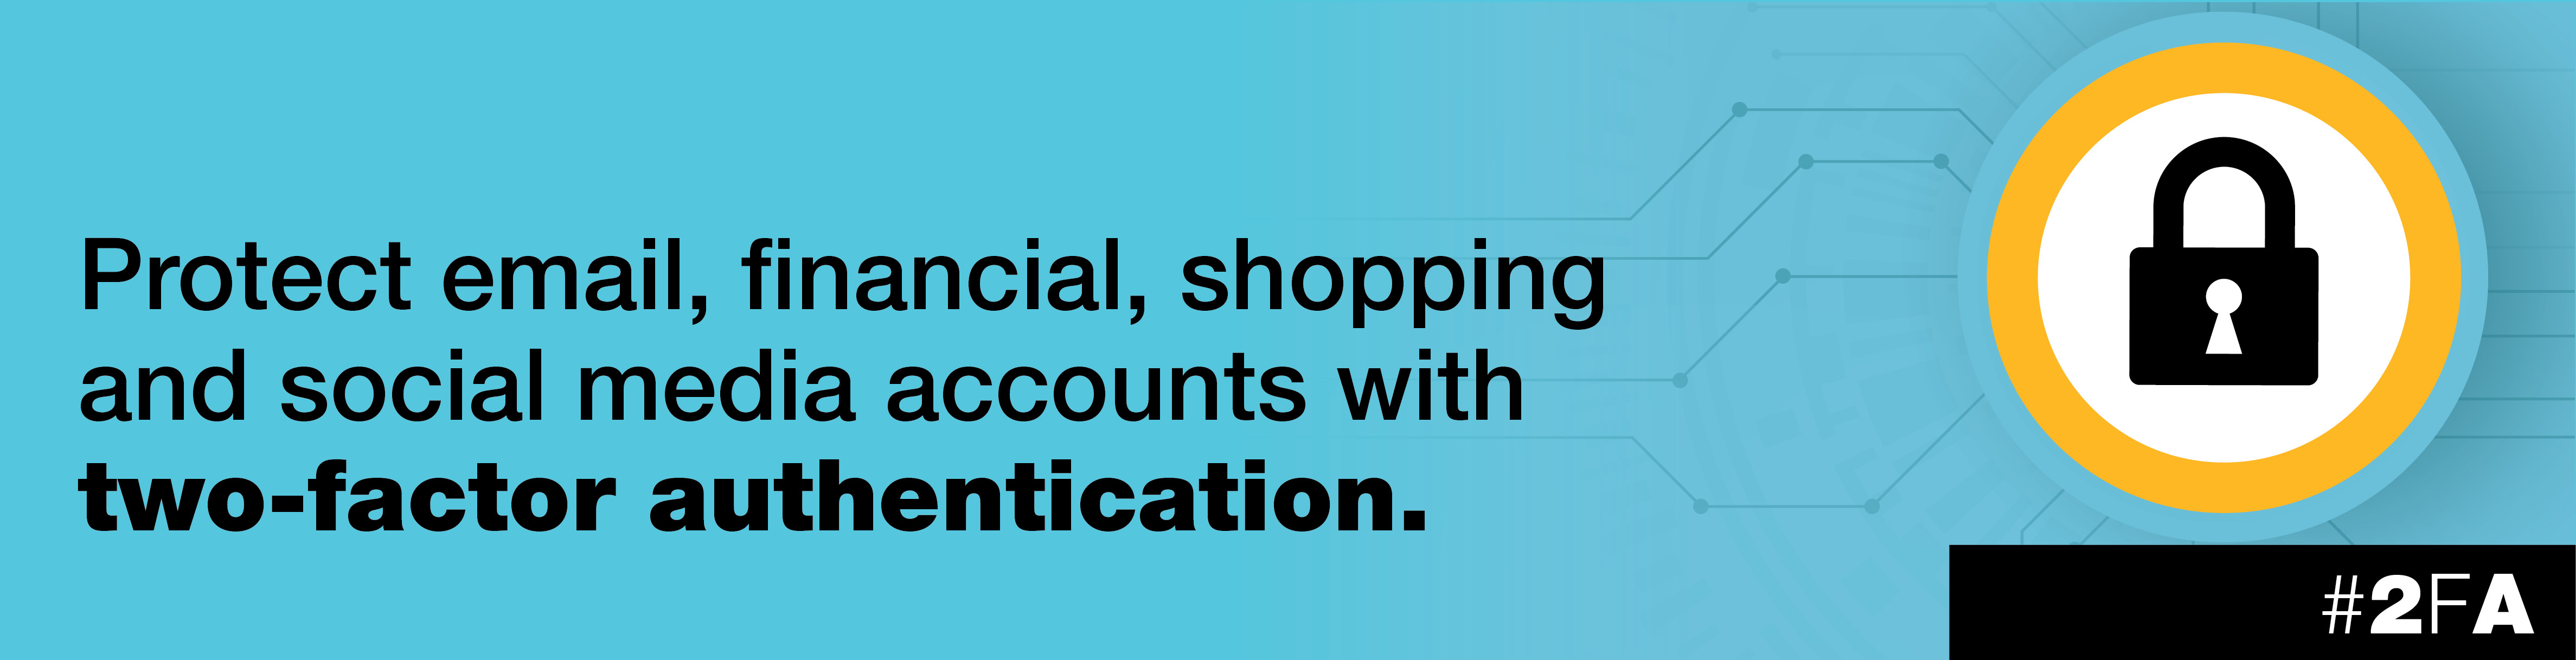 "Banner with a lock image that says ""Protect email, financial, shopping and social media accounts with two-factor authentication. Hashtag 2FA"